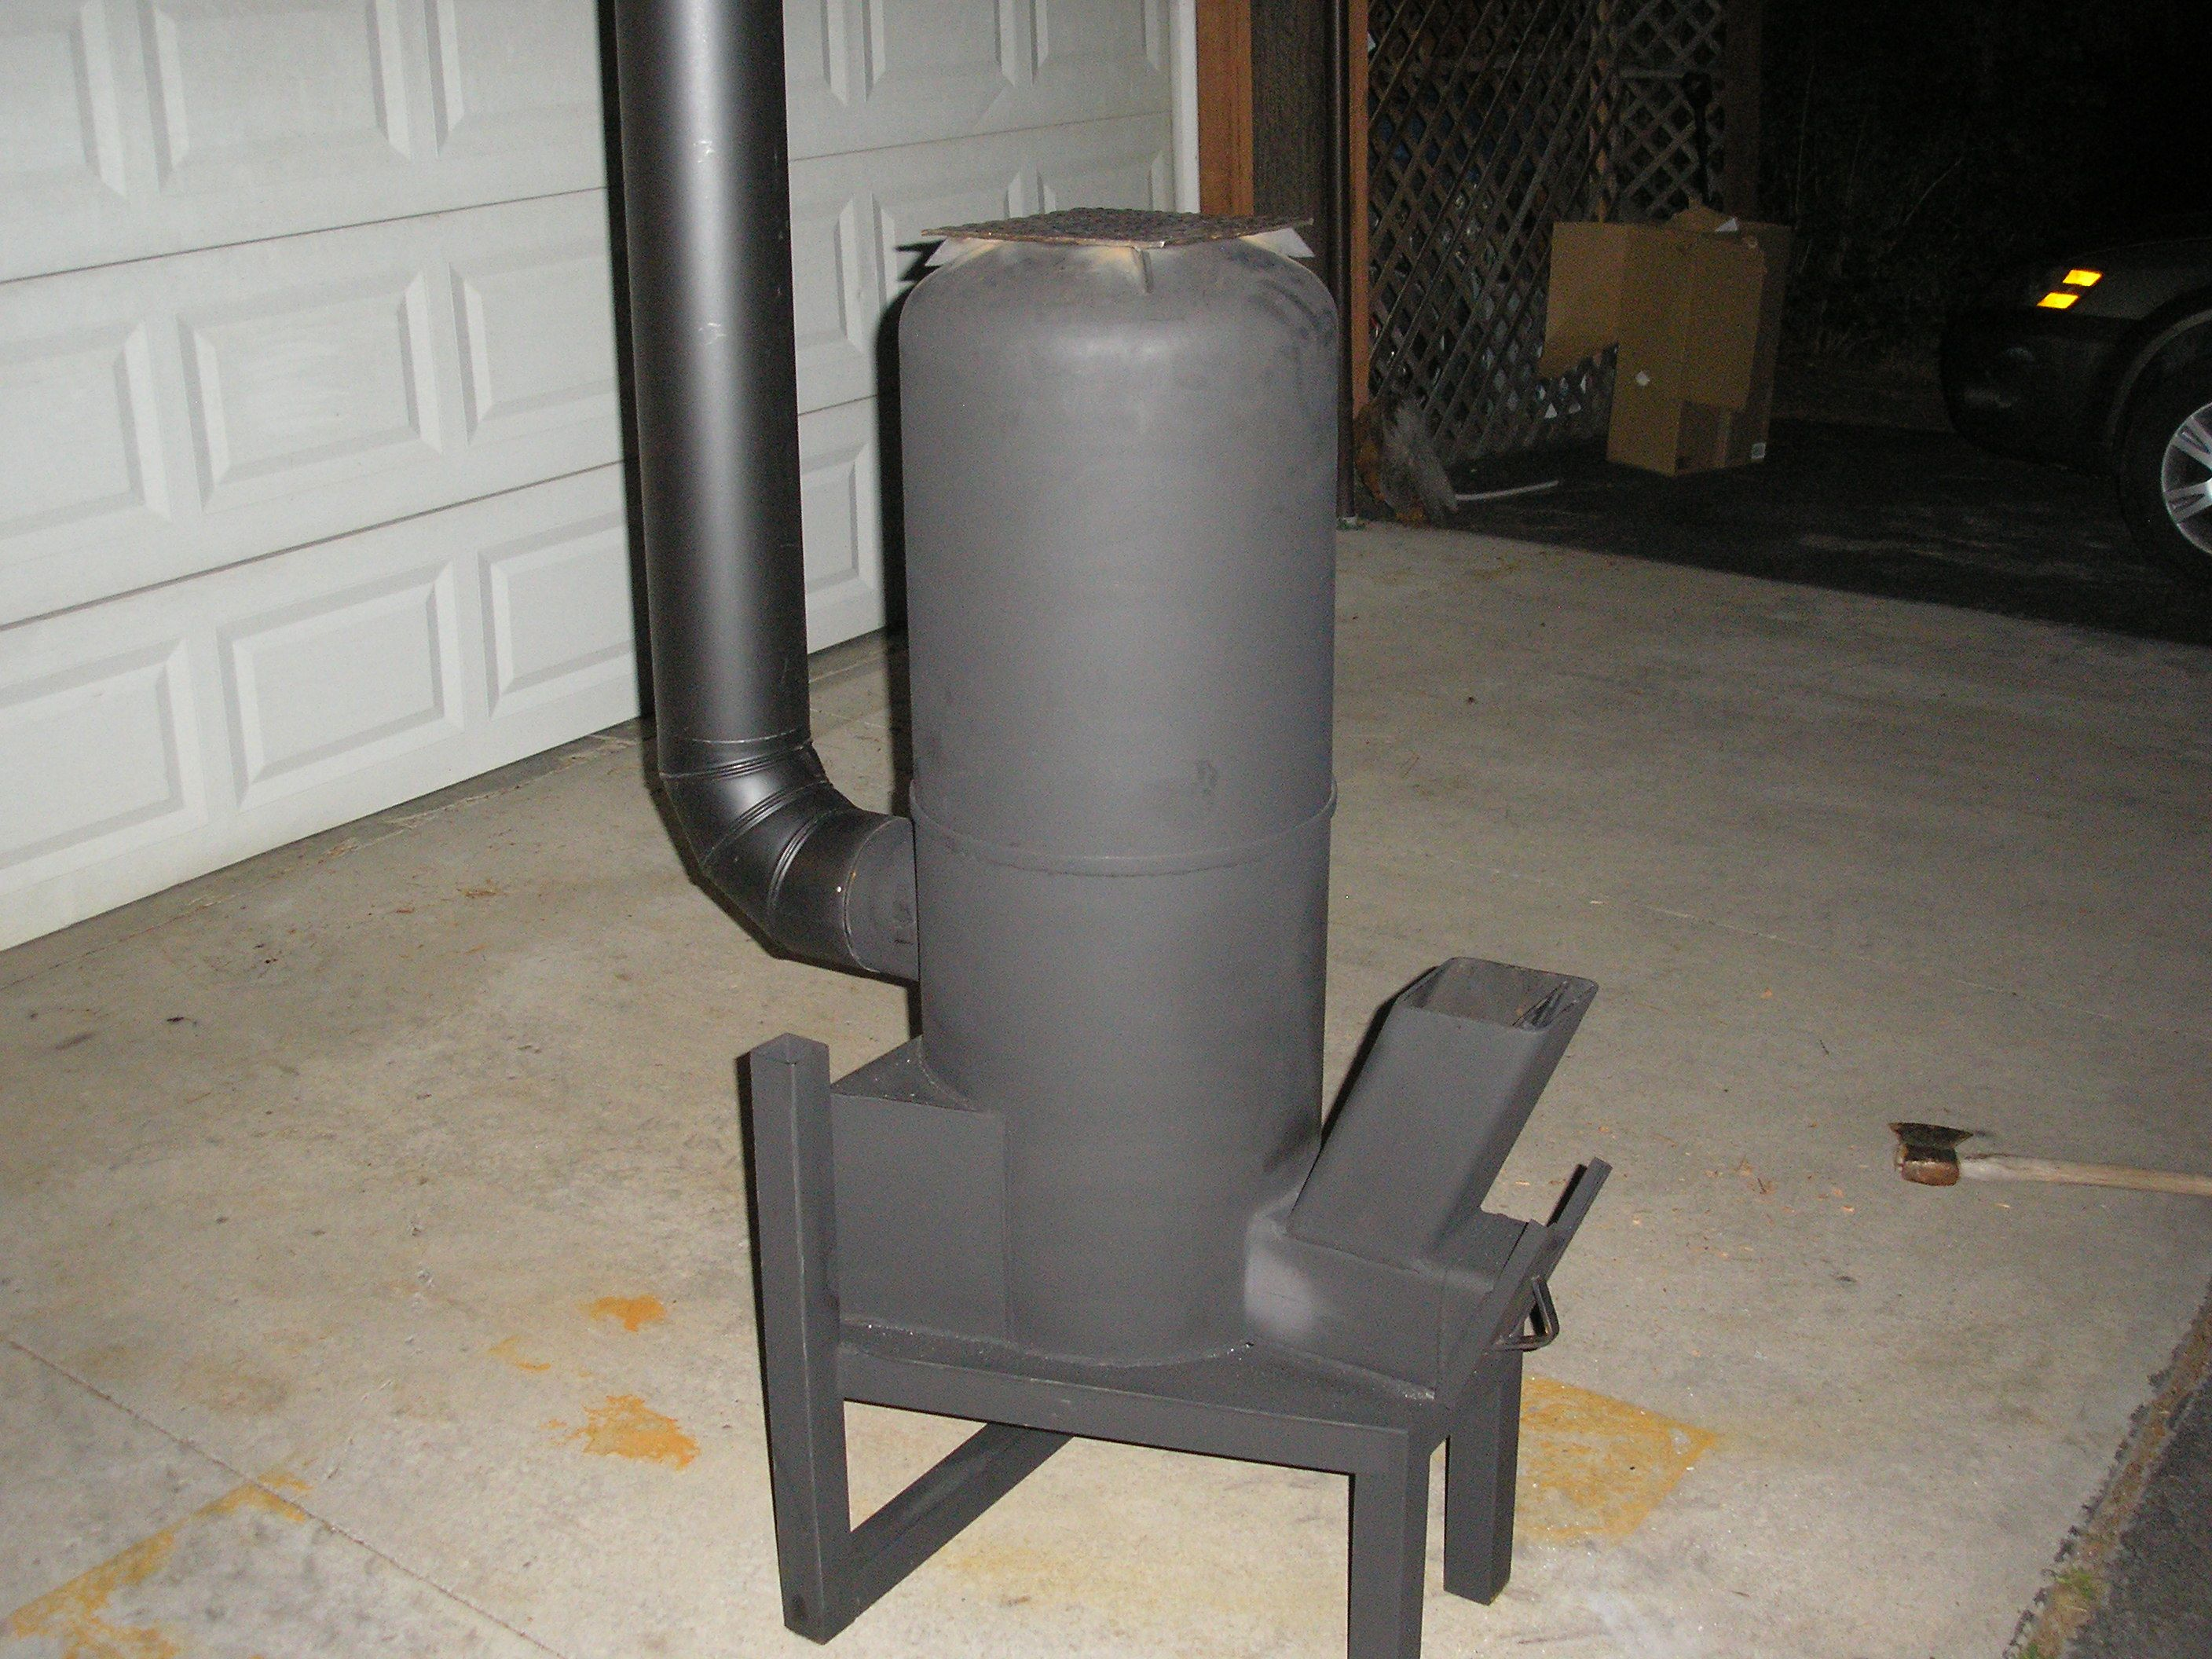 Diy Rocket Stove Heater With Hot Water And Hot Air Exchanger This